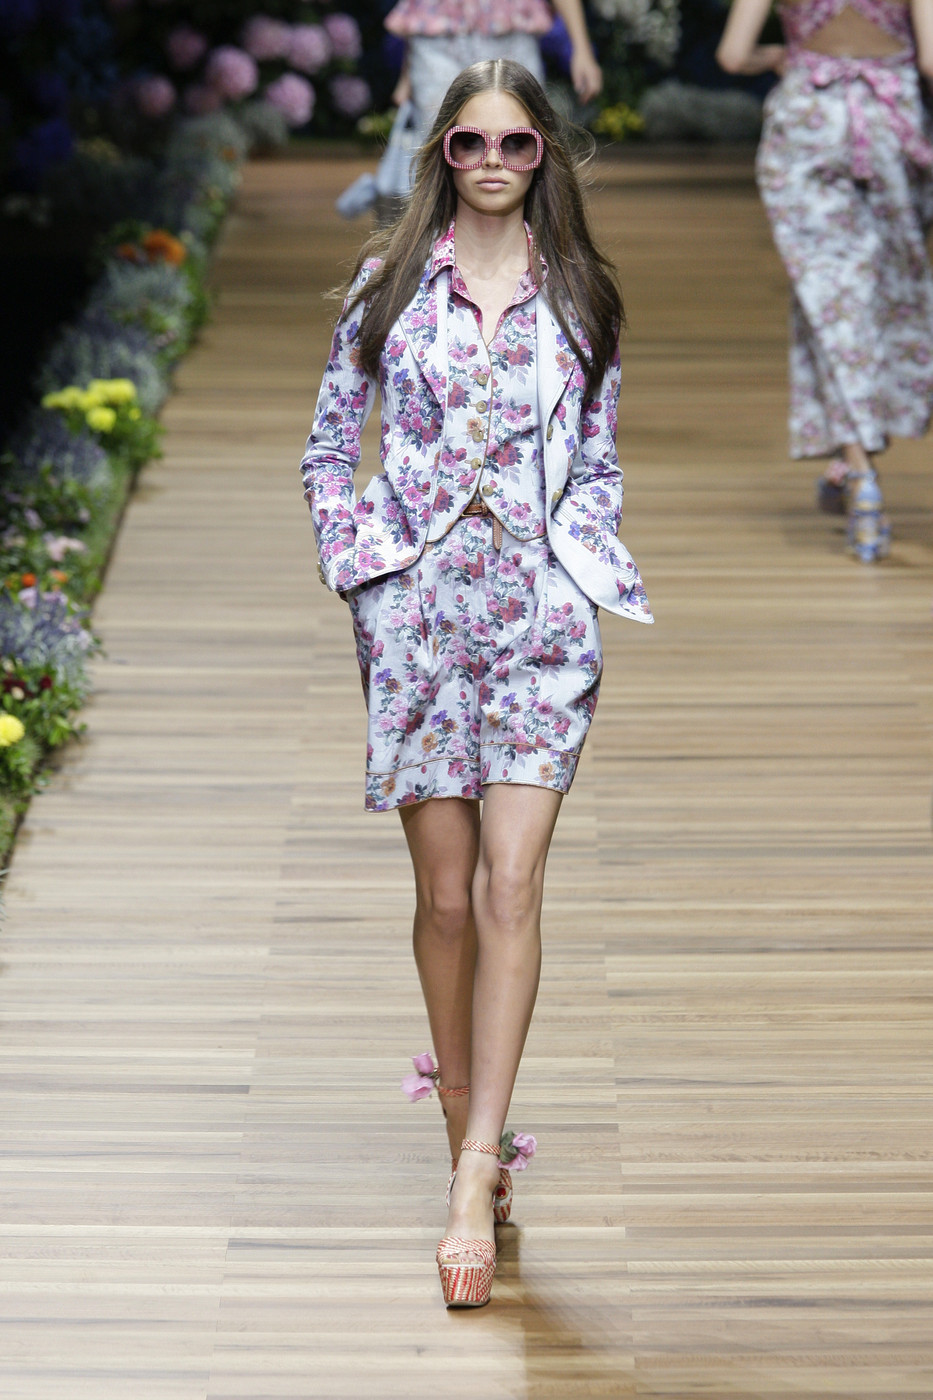 D&G at Milan Fashion Week Spring 2011